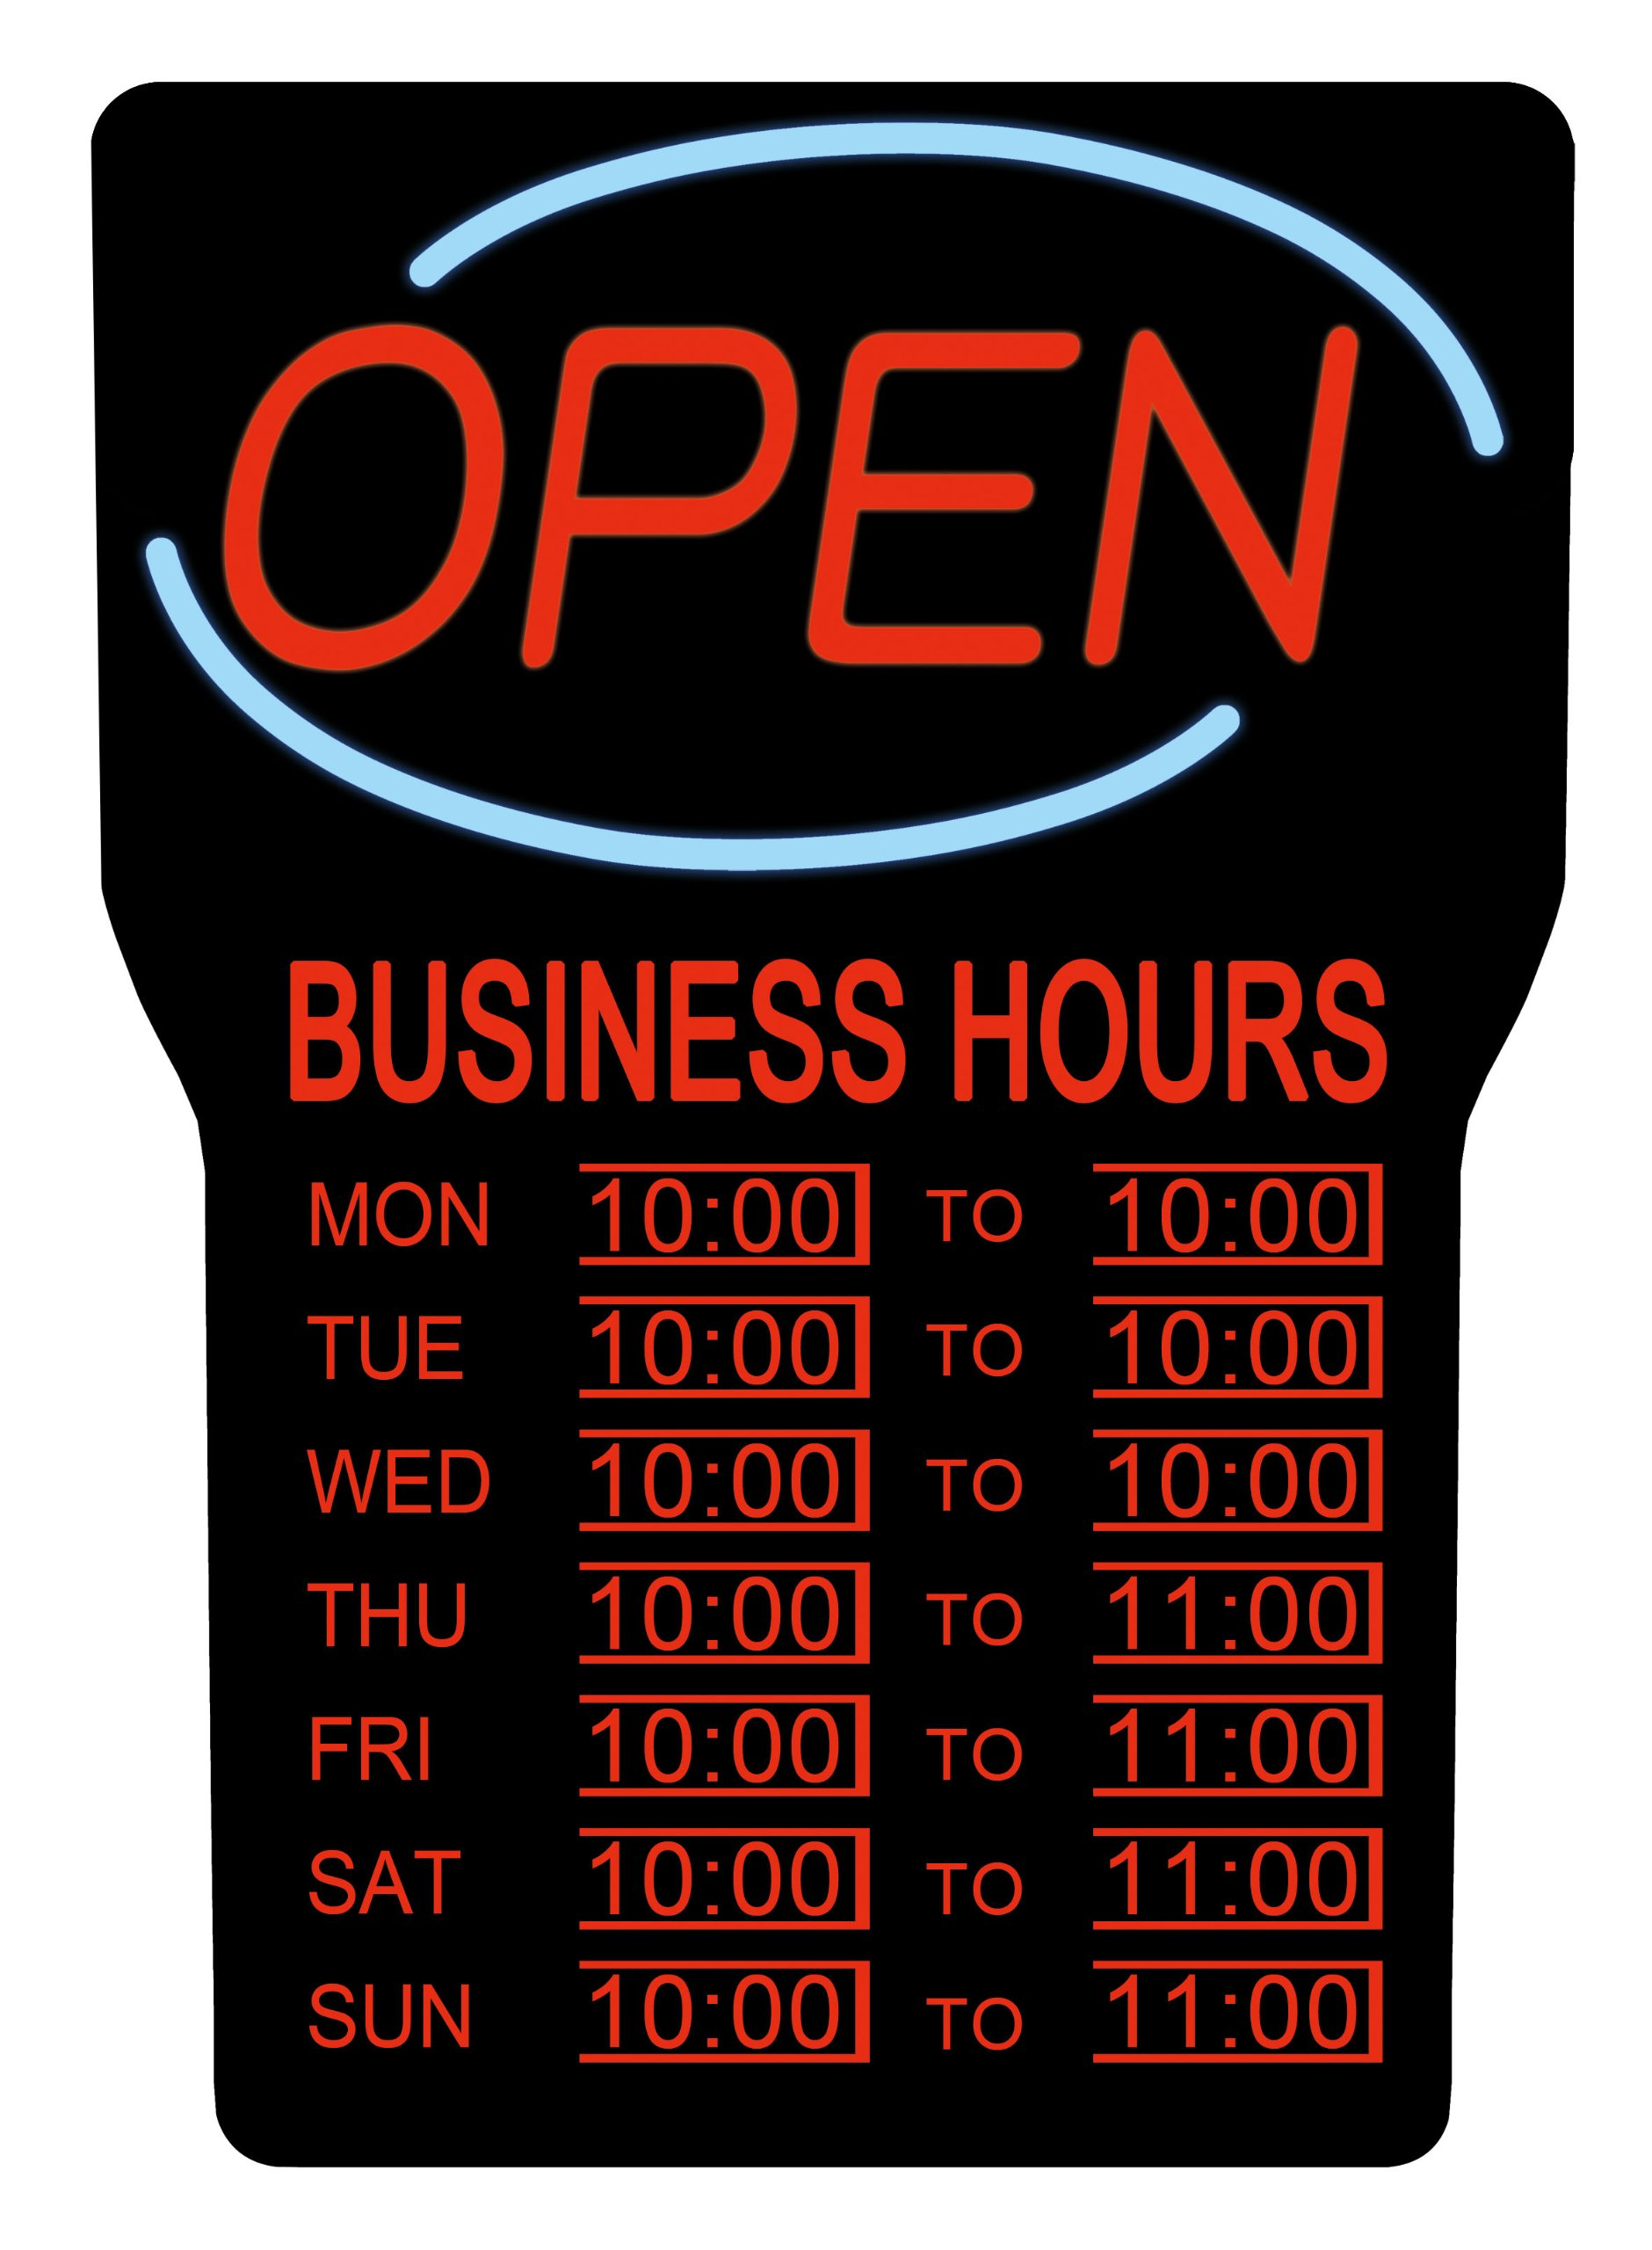 Royal Sovereign NEON LED Open Sign with Hours, Electric open sign advertisement for business, window, bar, wall, shop, hotel, Ultra-Bright, Flashing  (RSB-1342E)